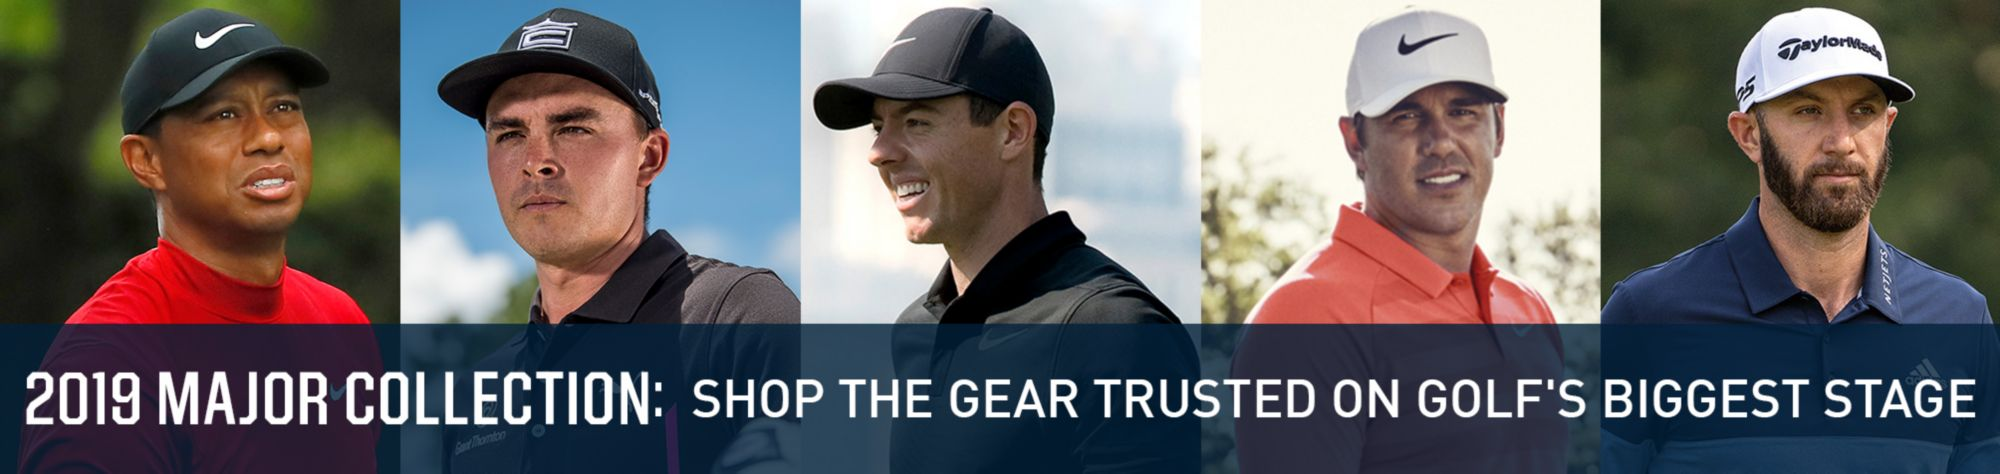 2109 Major Collection: The Gear Trusted on Golf's Biggest Stage